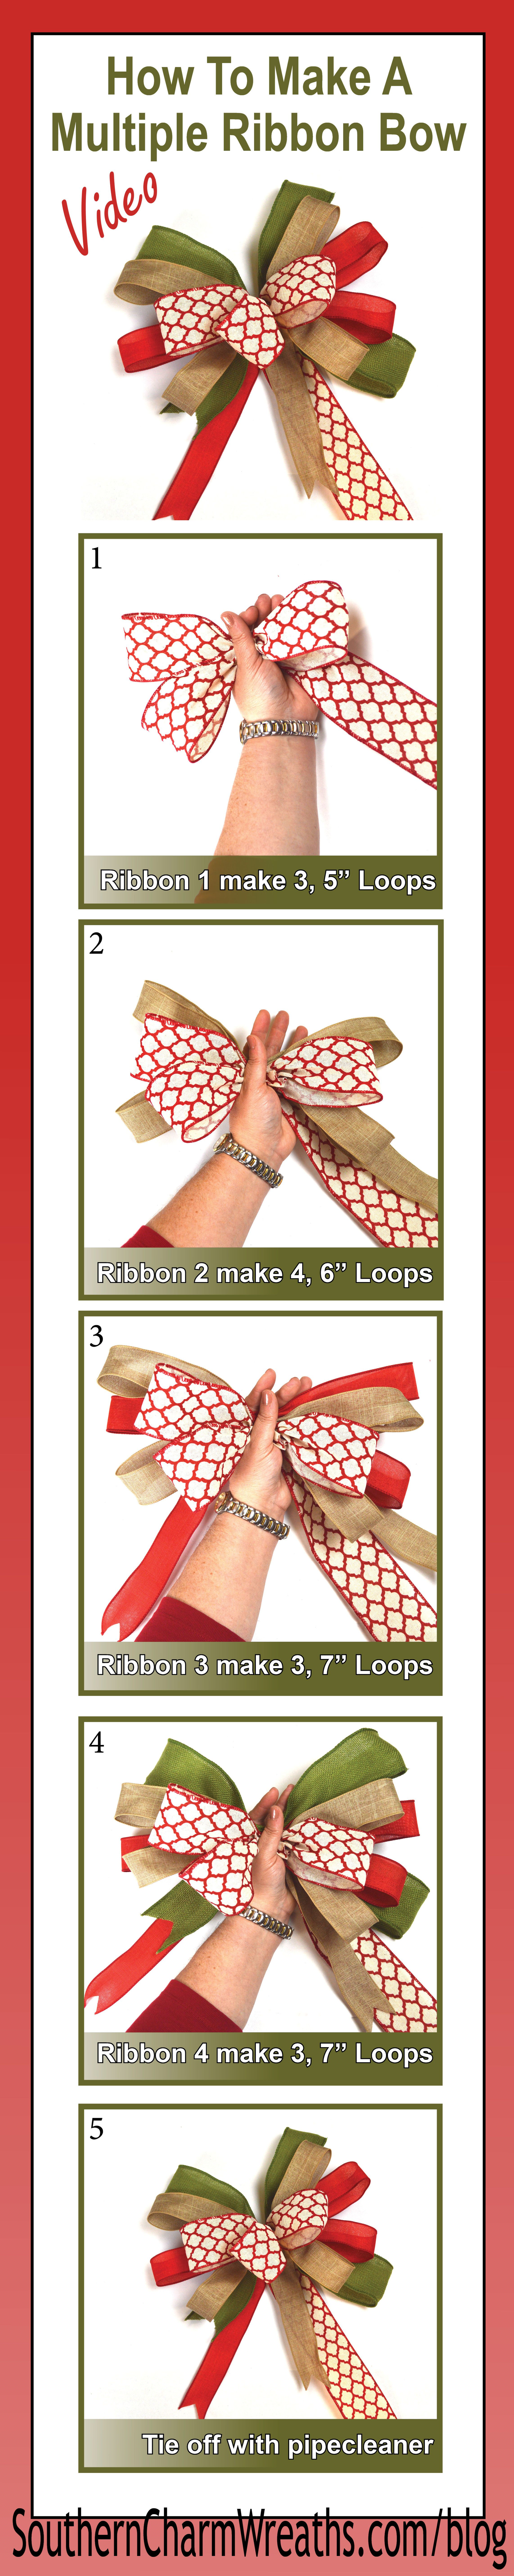 Click Image For Video  How To Make A Bow Using Multiple Ribbons By Julie  Siomacco